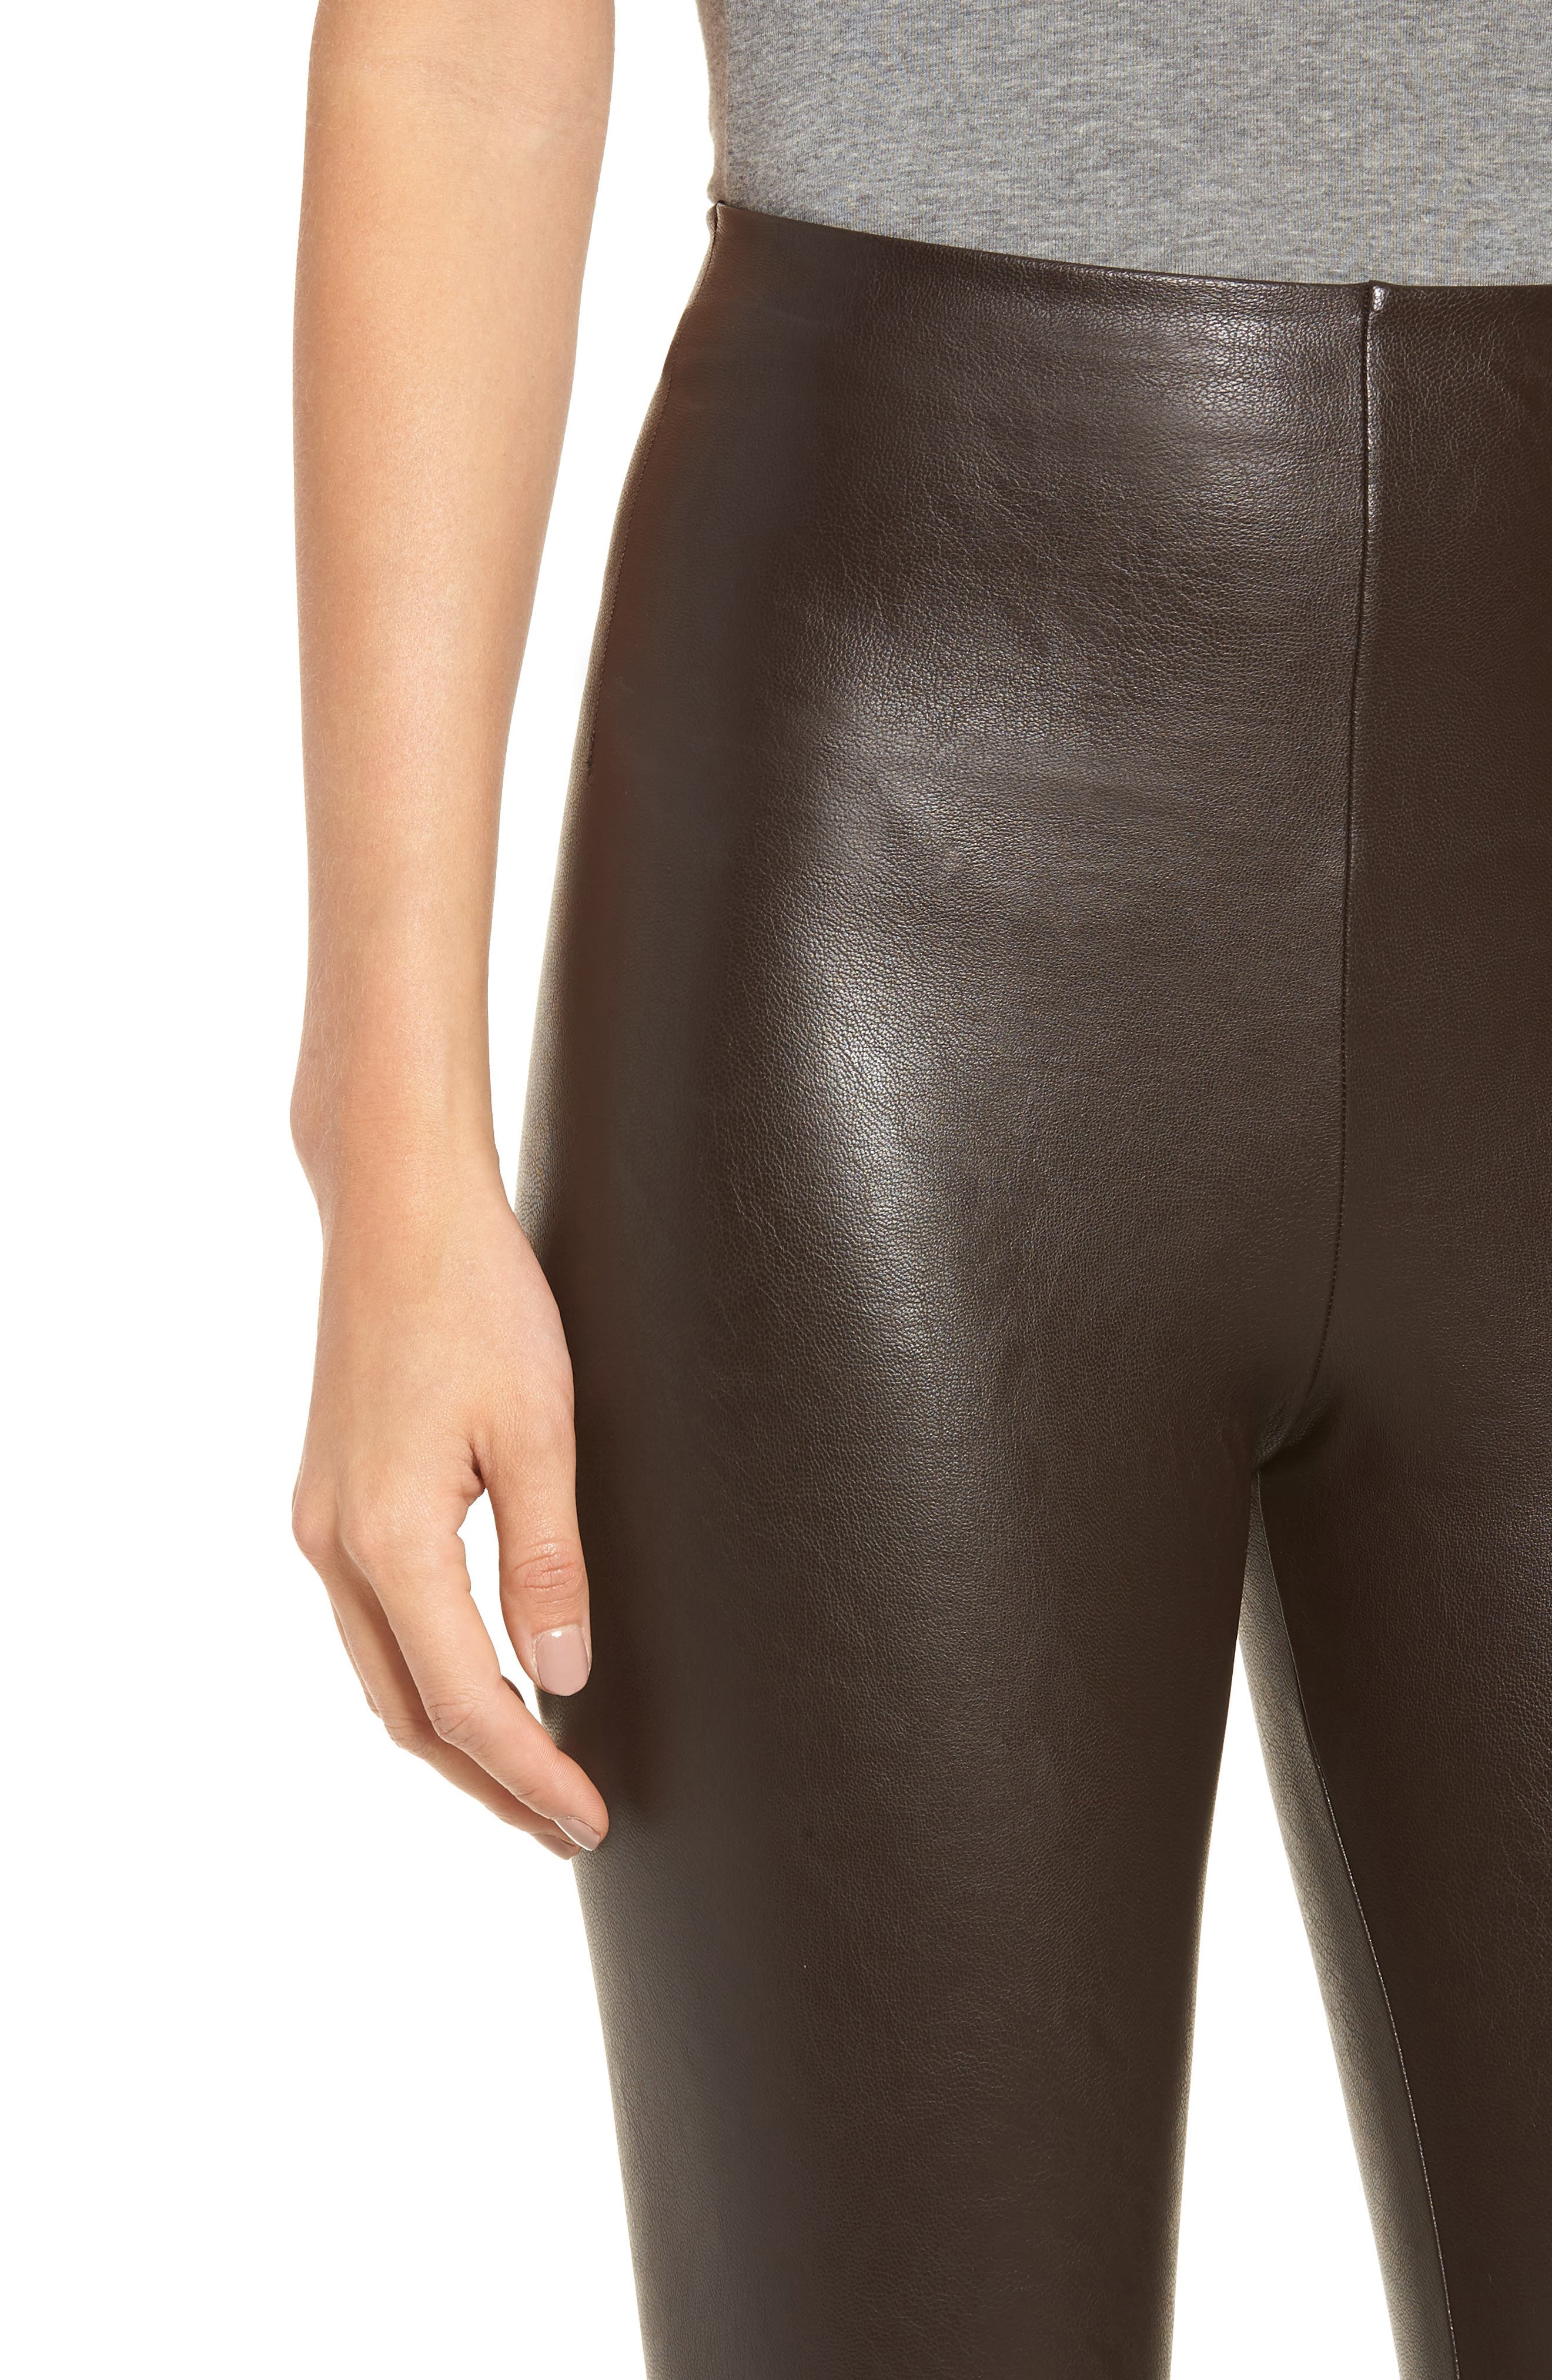 Perfect Control Faux Leather Leggings,                             Alternate thumbnail 4, color,                             201